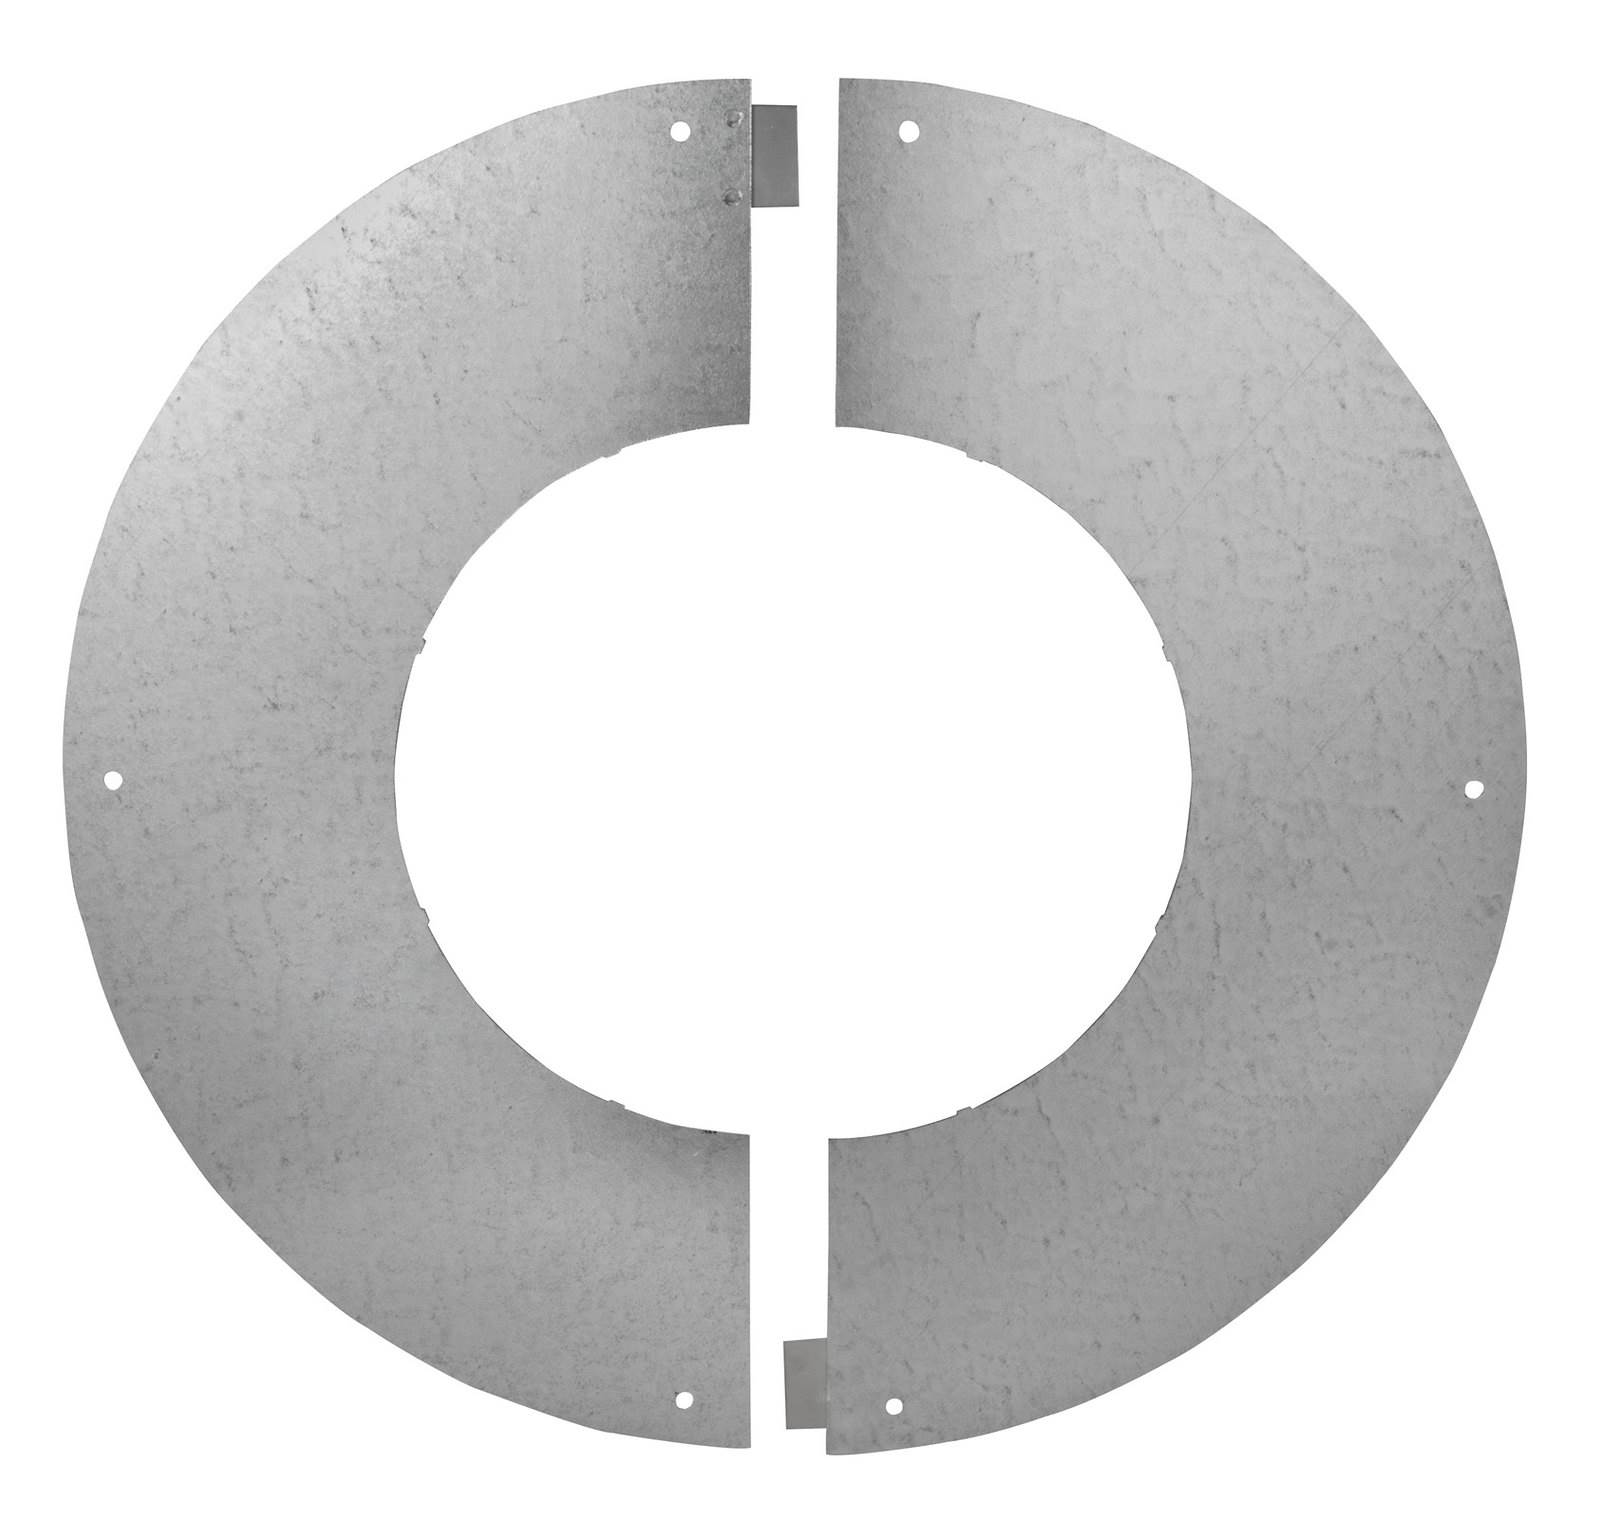 Unventilated Bungalow Round Firestop Plate - Schiedel ICID Twin Wall